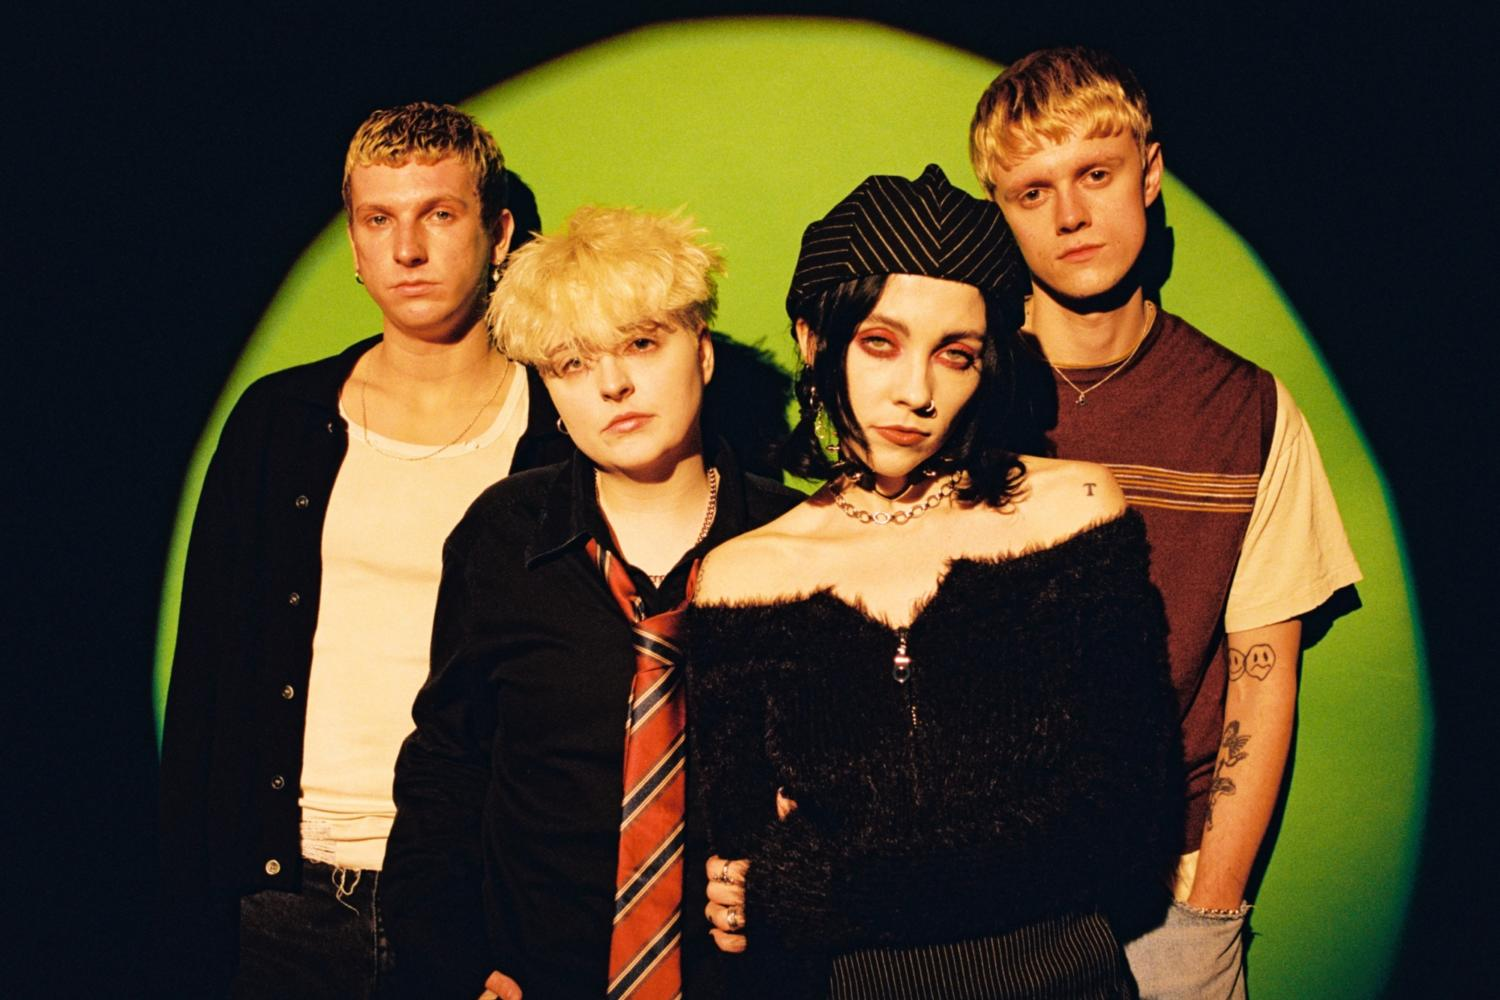 Pale Waves share new track 'She's My Religion'